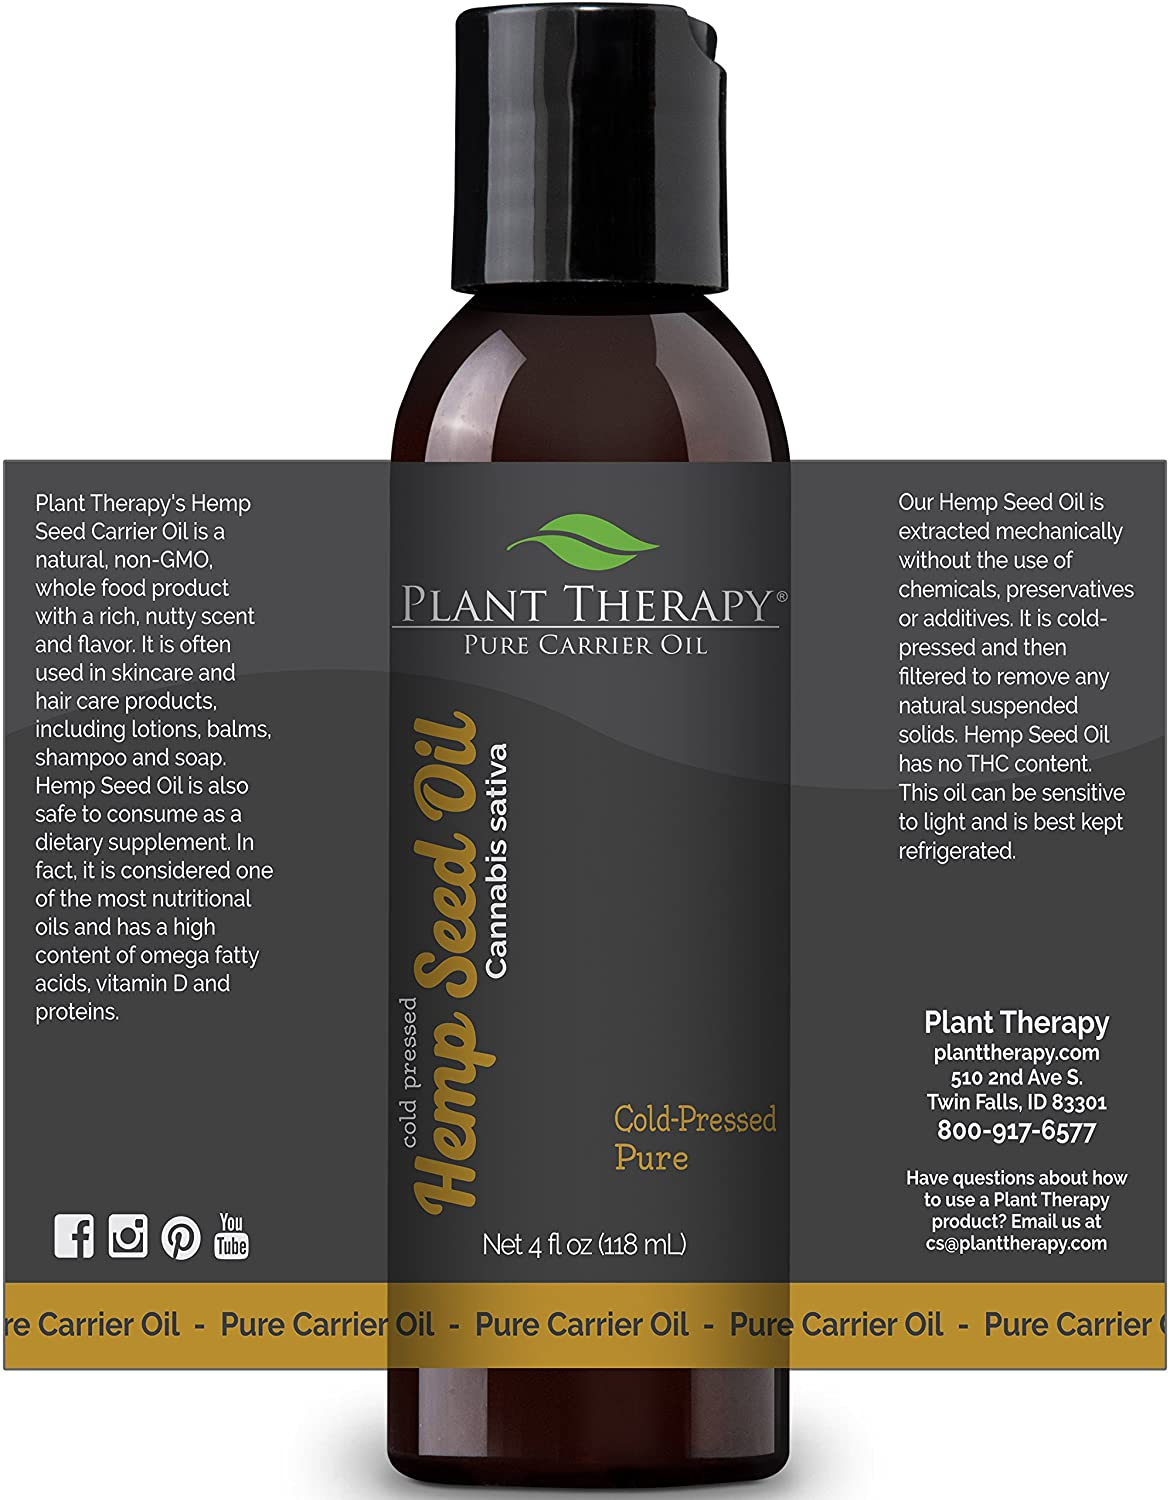 Amazon Com Plant Therapy Hemp Seed Carrier Oil 4 Oz Base Oil For Aromatherapy Essential Oil Or Massage Use Beauty